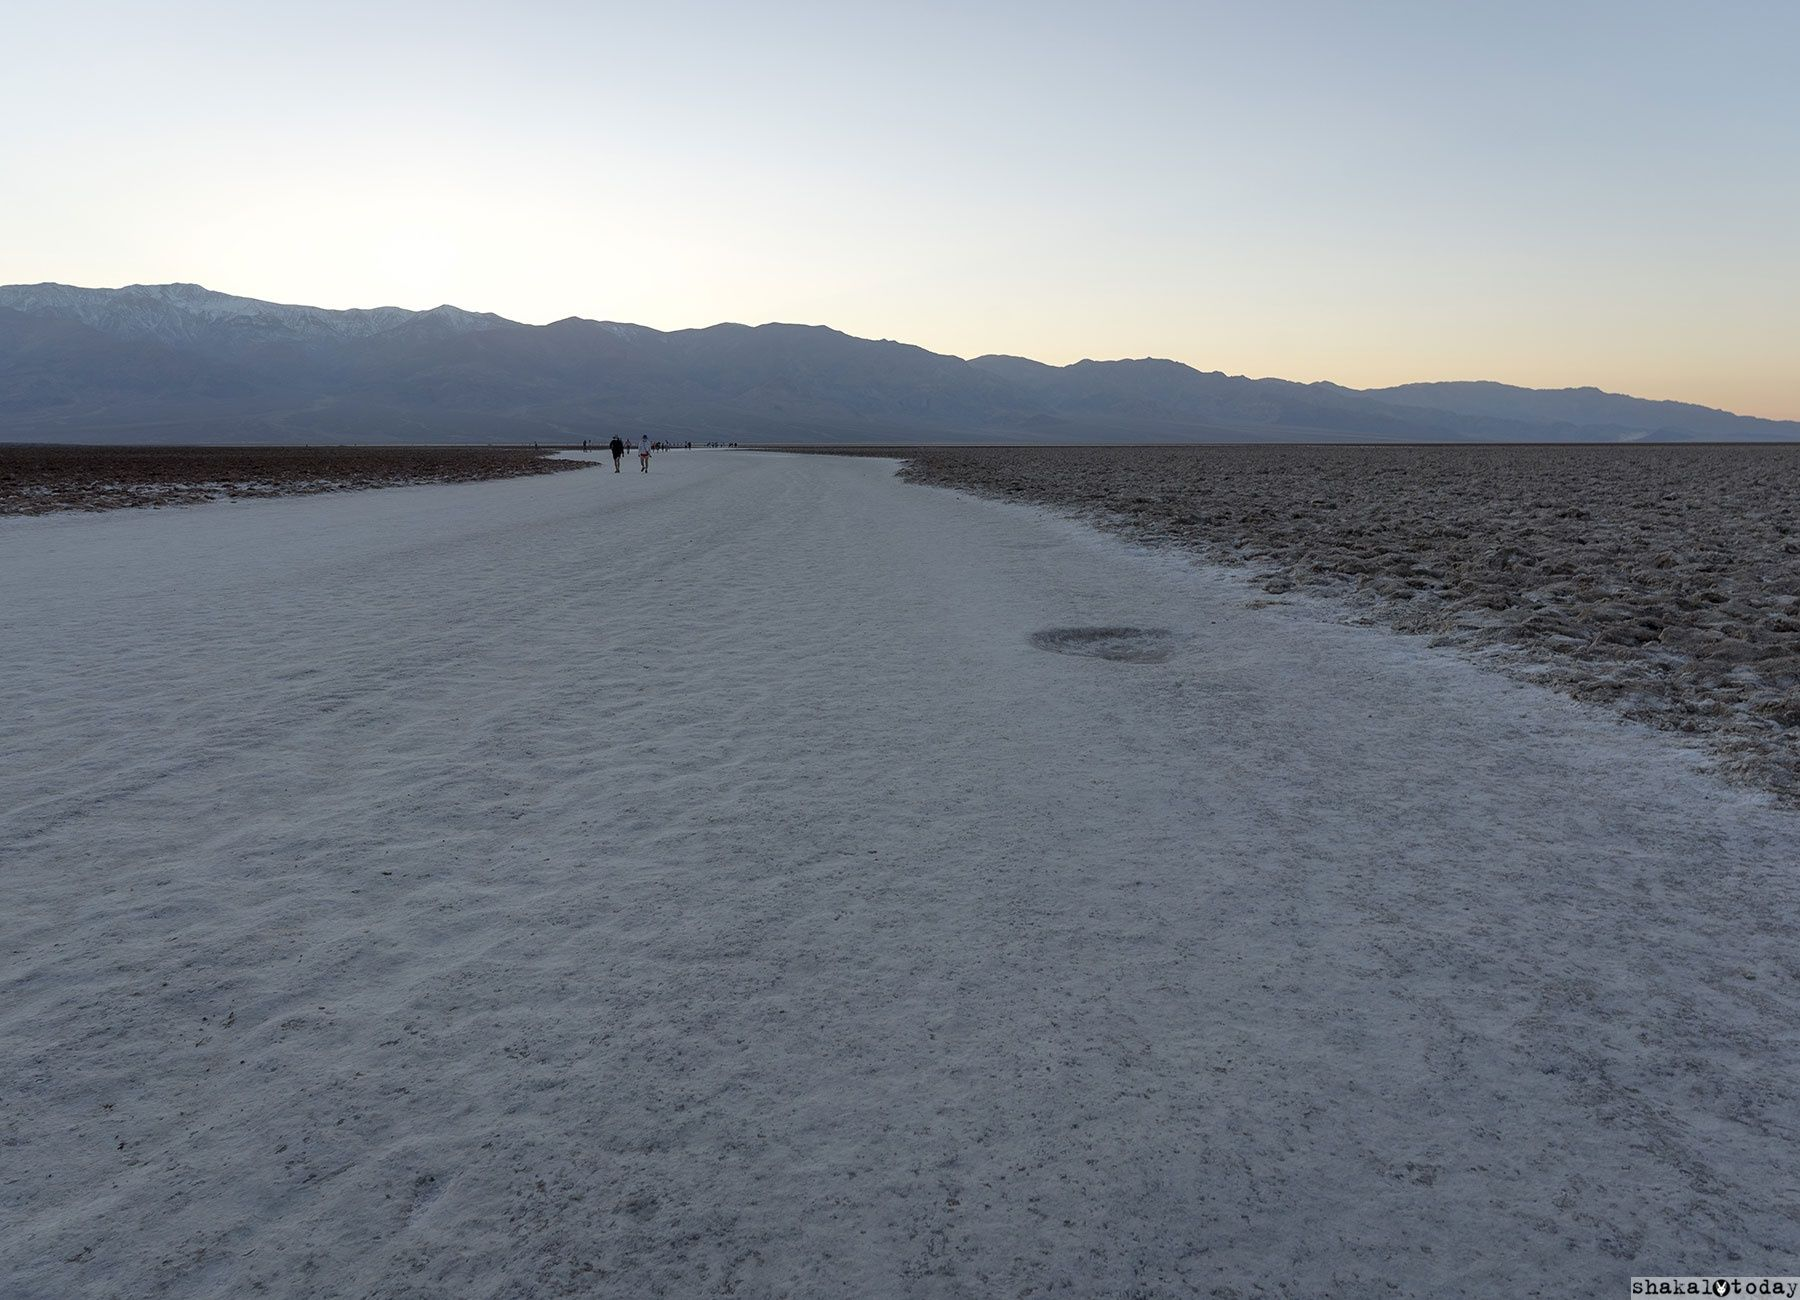 Badwater-Shakal-Today-0005.jpg